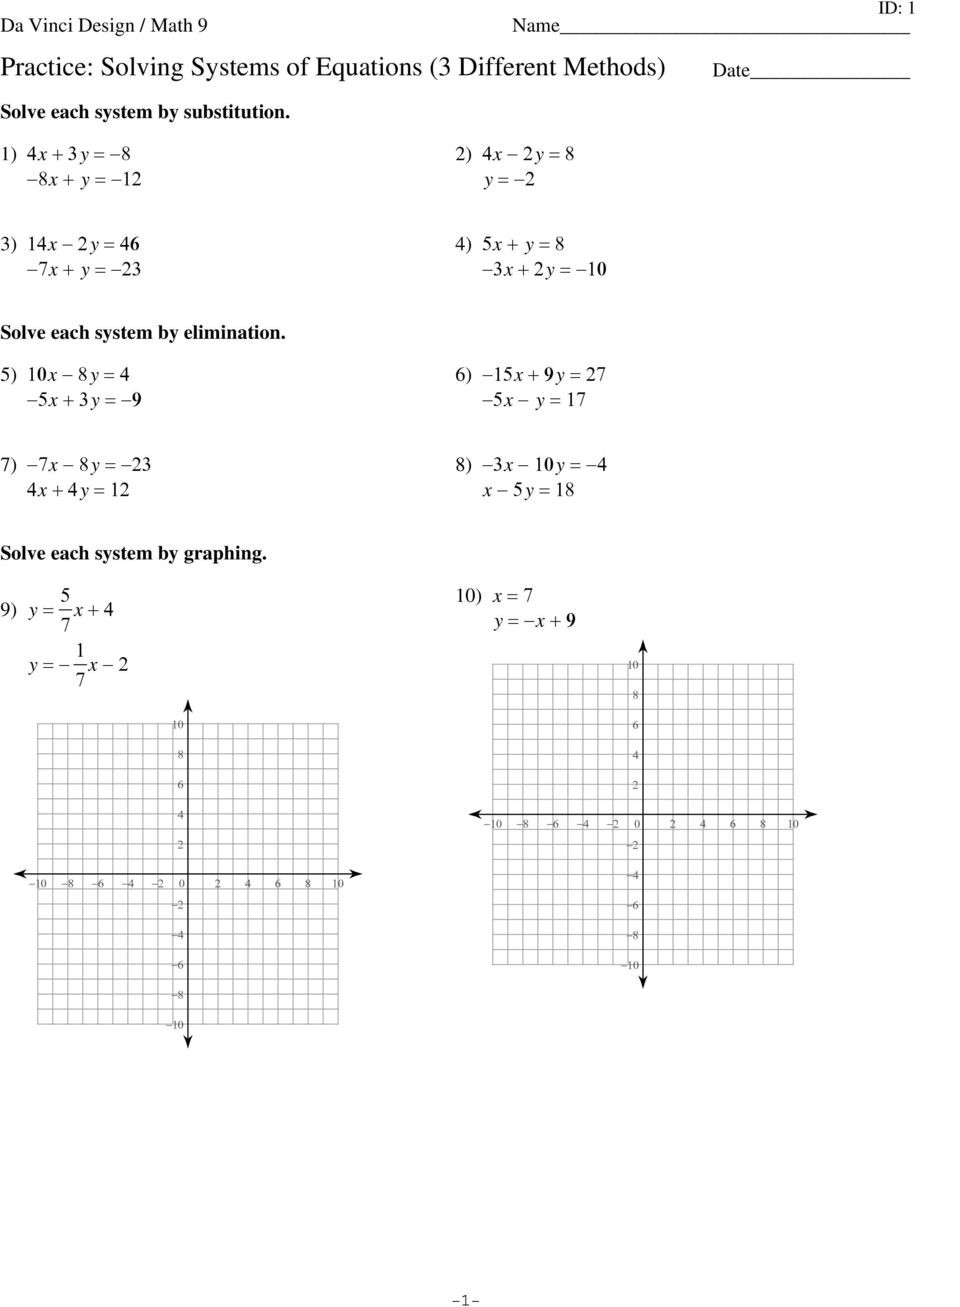 Graphing Systems Of Equations Worksheet 3 1 Practice solving Systems Equations by Graphing Answer